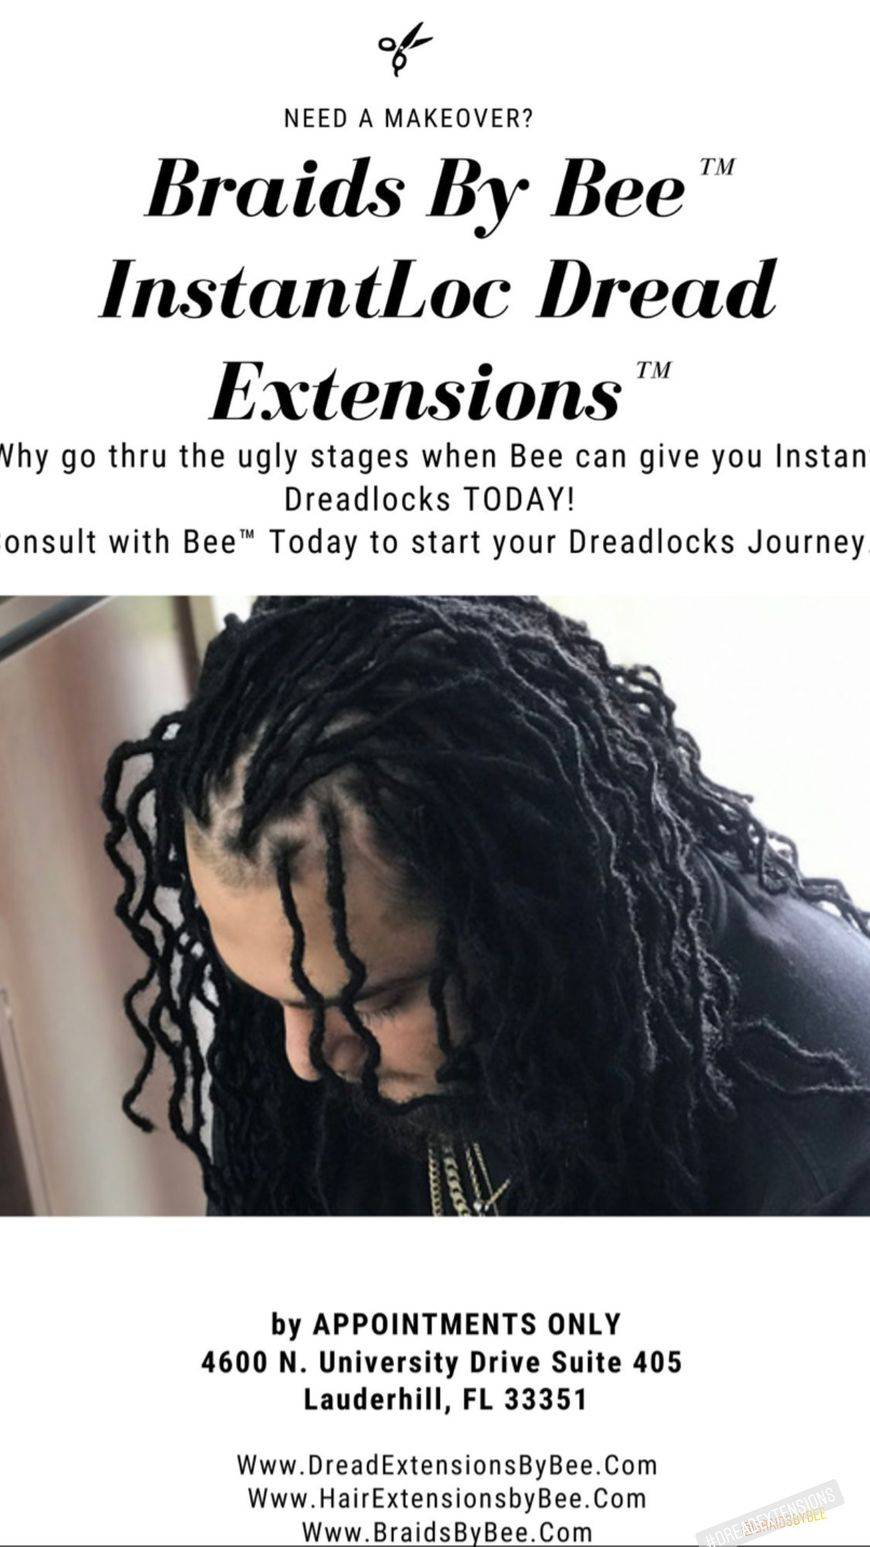 Braids By Bee is known to start dreadlocks with caucasian hair with her unconventional methods proven to work with clients from all around the world.  Bee starts dreadlocks with her InstantLoc Dread Extensions only done at Braids by Bee™